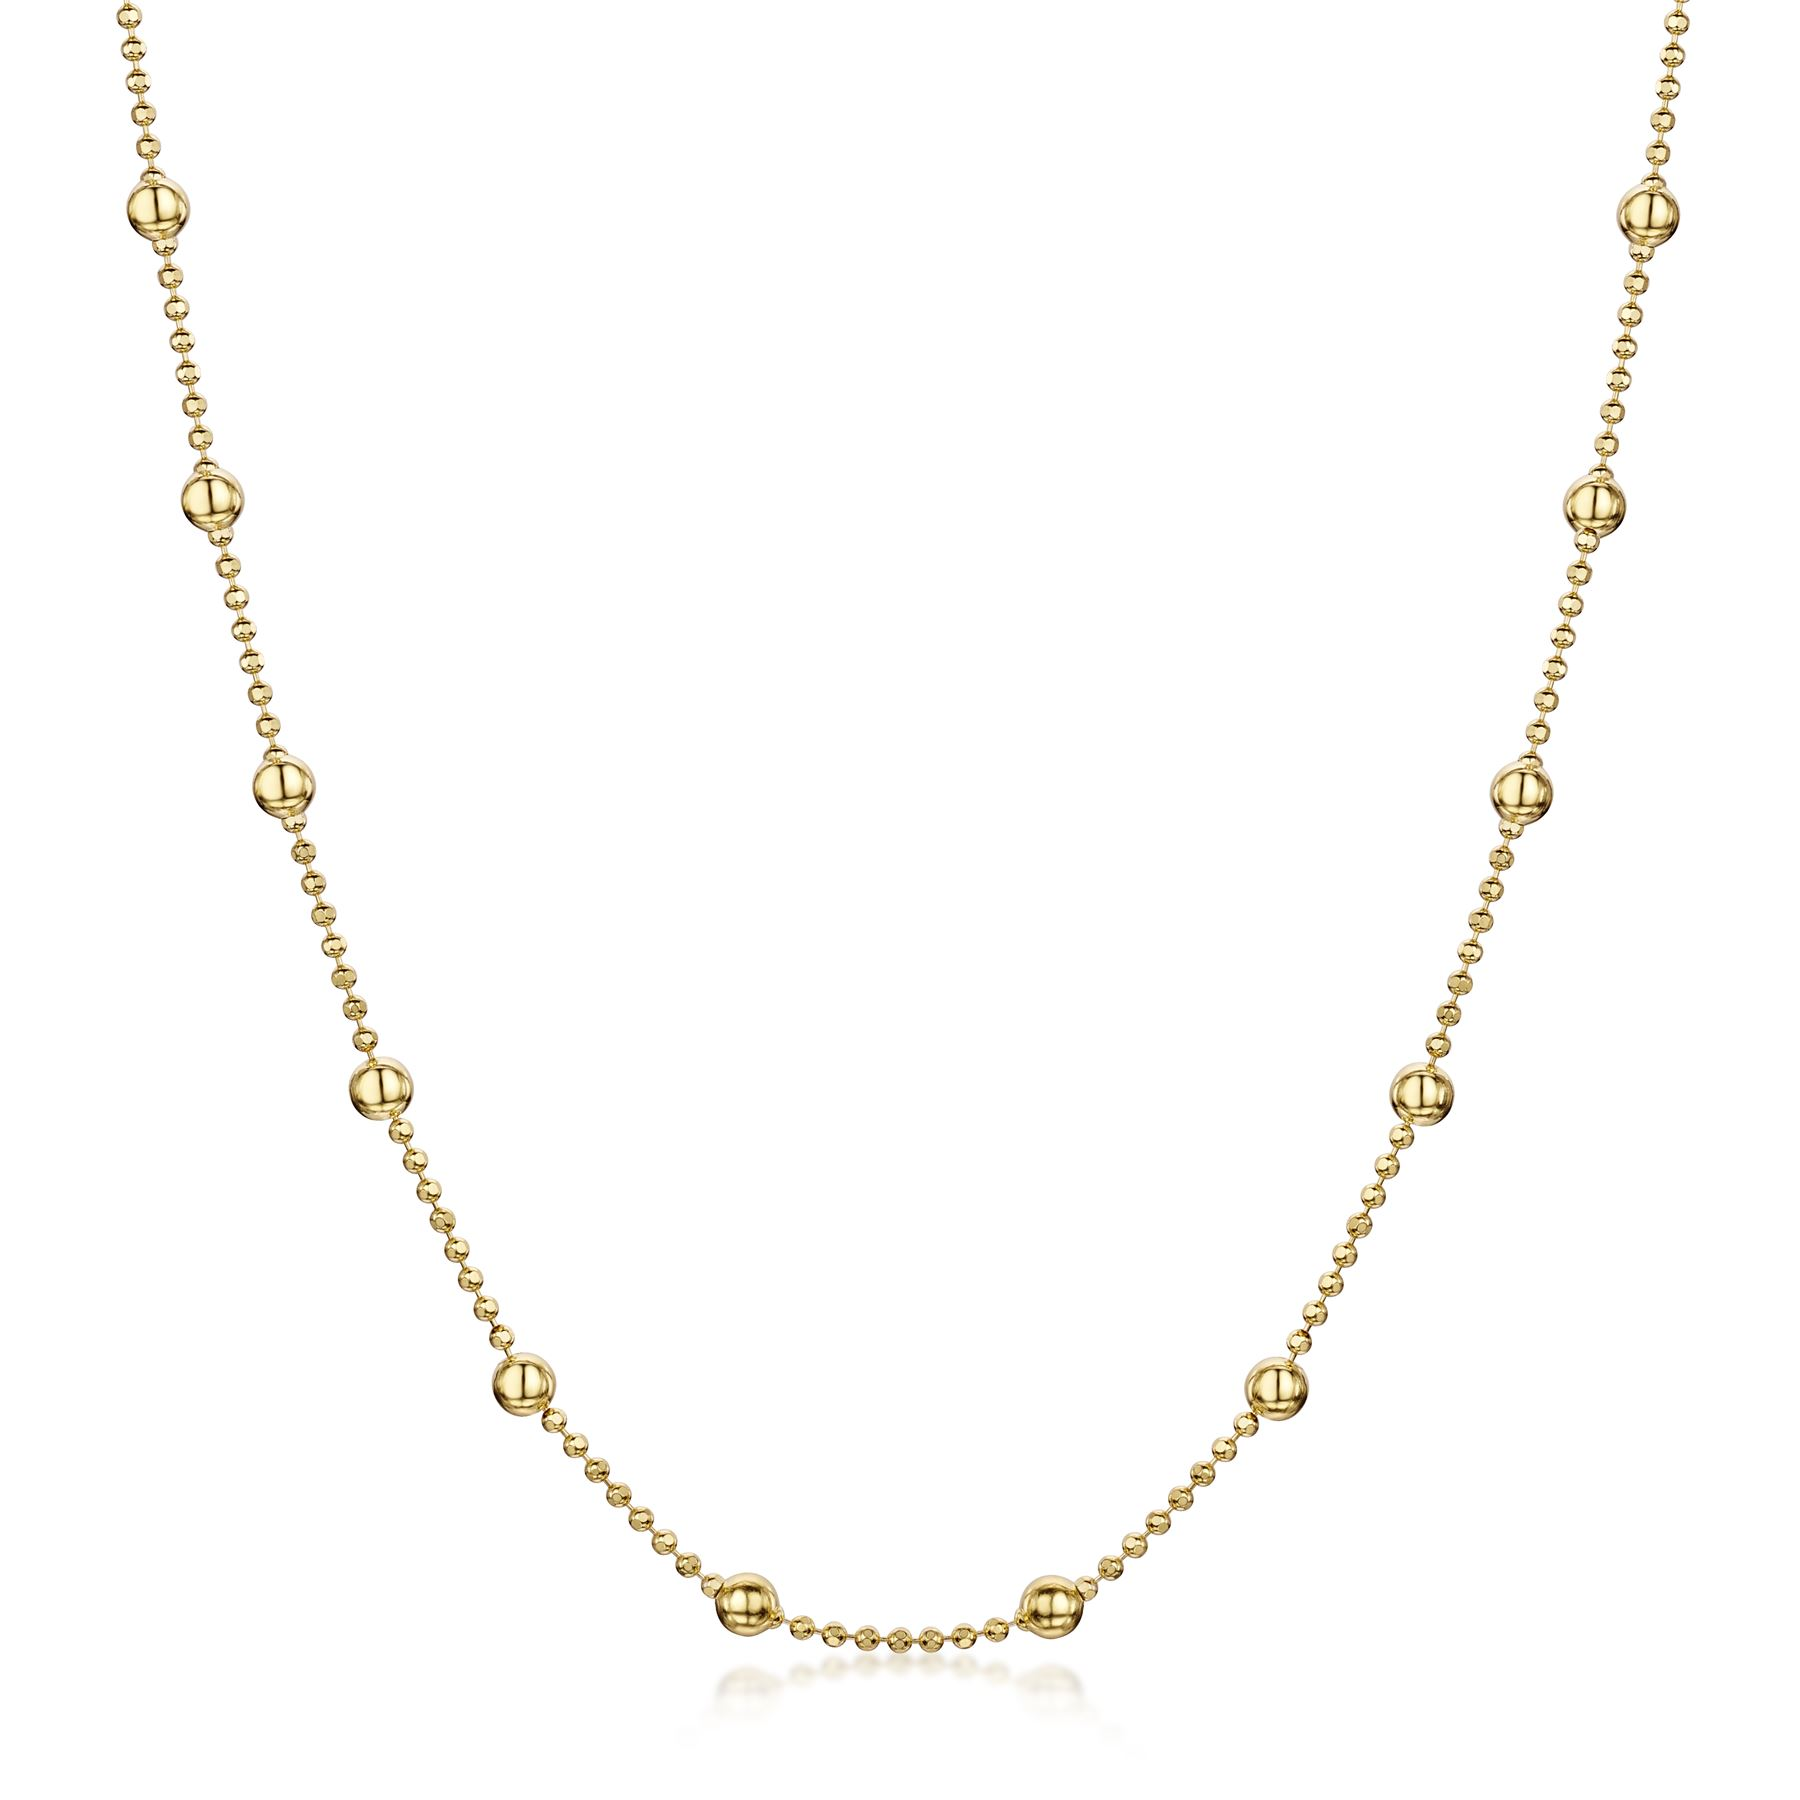 Amberta-Jewelry-Gold-Plated-on-Real-925-Sterling-Silver-Necklace-Chain-Italy thumbnail 48